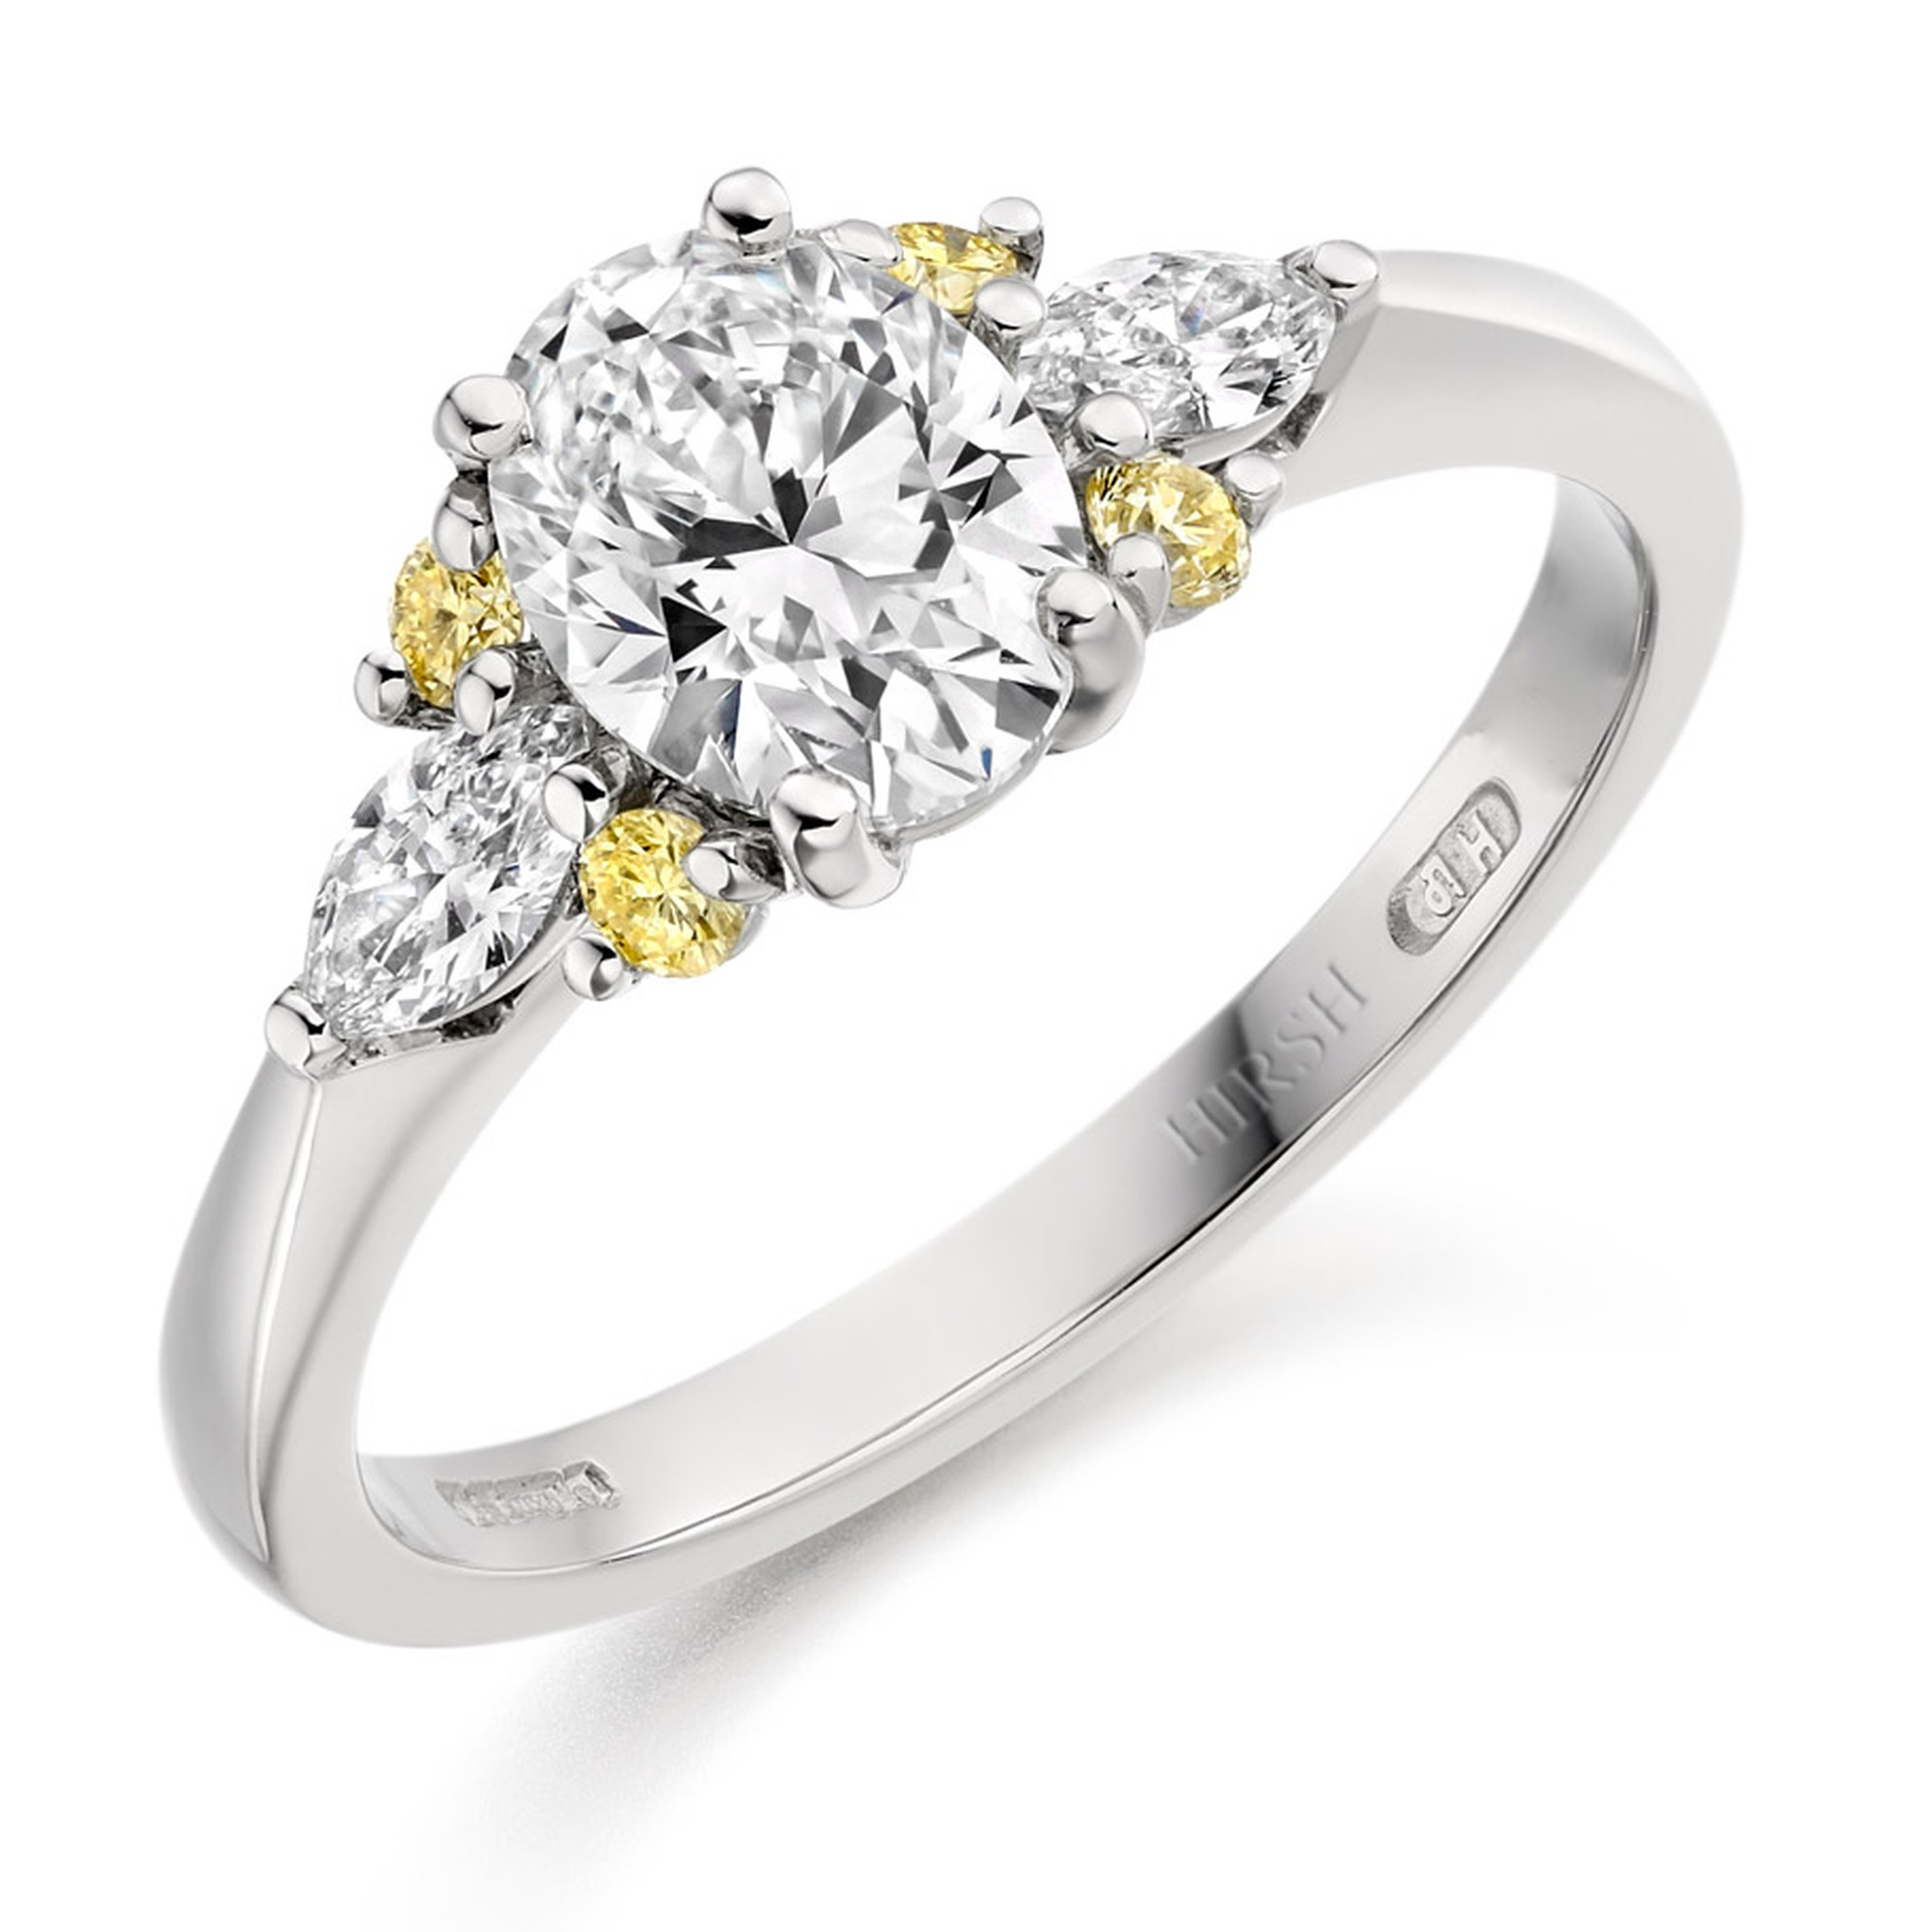 Burlington-Arcade-Papillon-ring-by-Hirsh-in-platinum-with-natural-yellow-diamonds.jpg